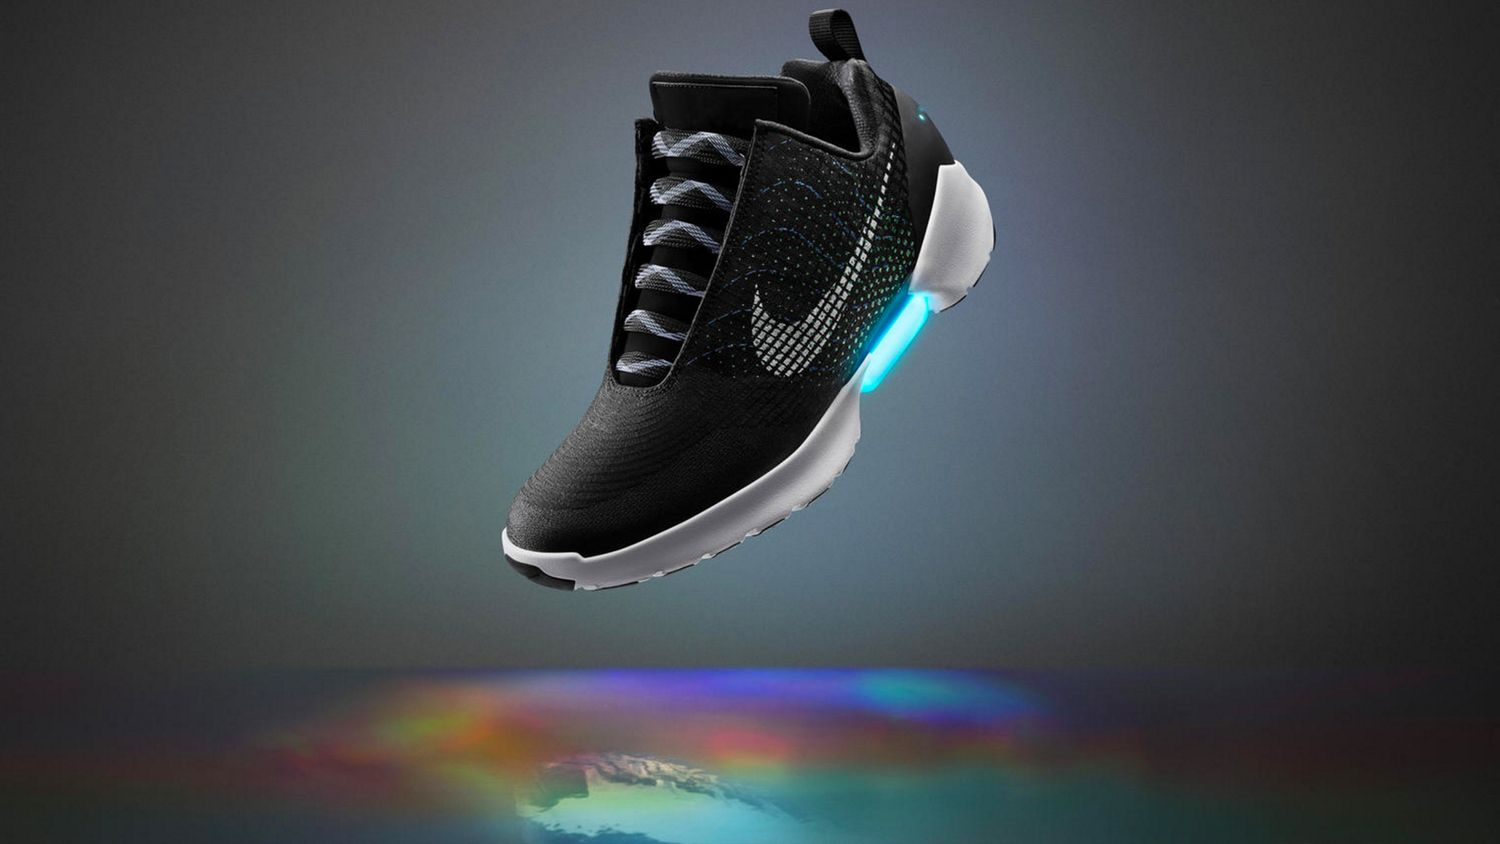 Watch: Commercial For Nike's New Power Lacing Shoes | Nike